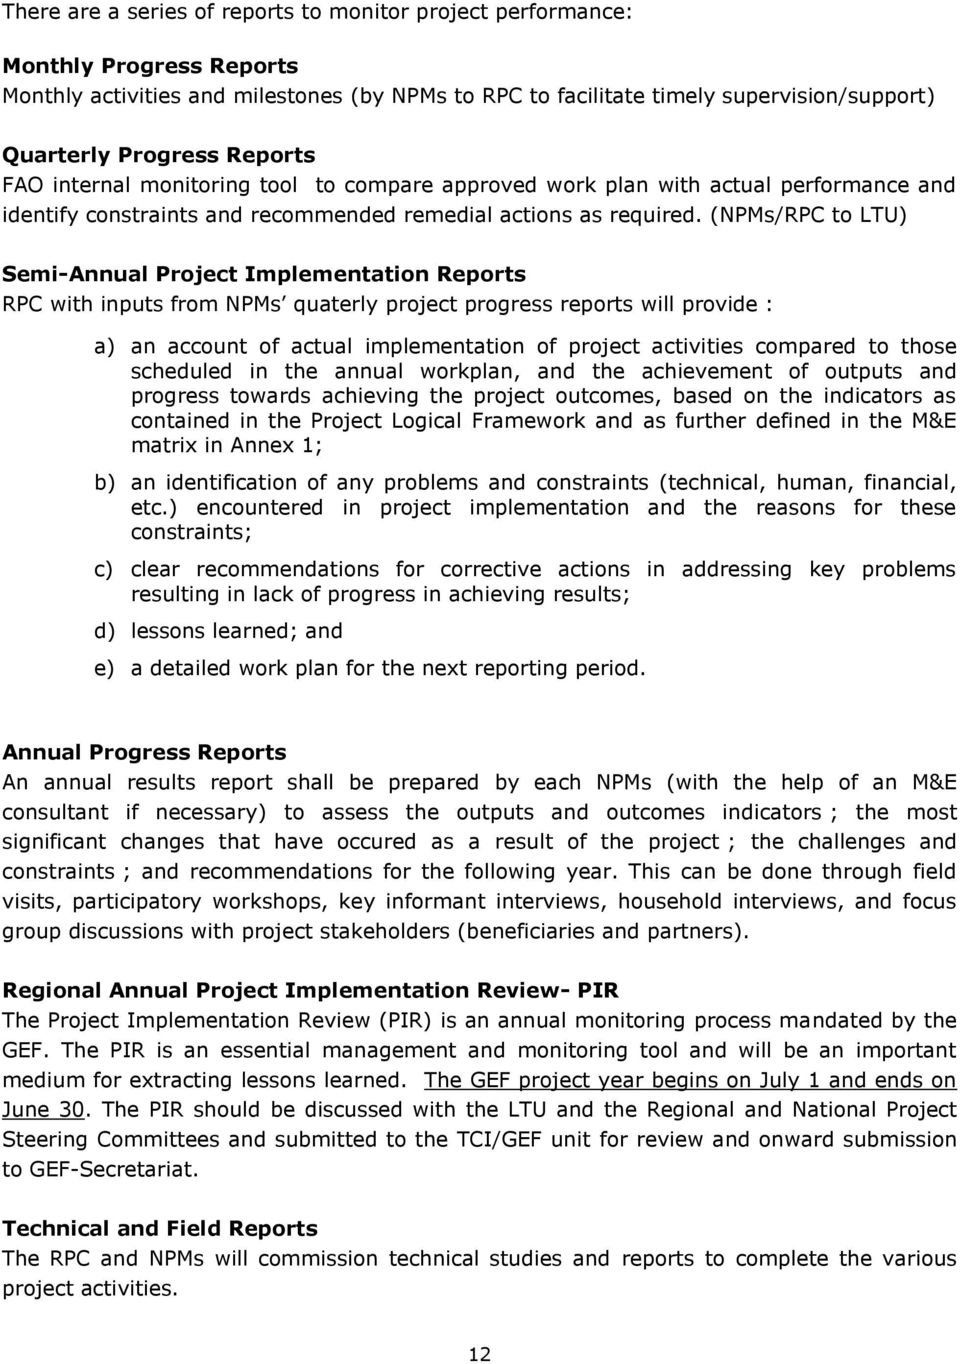 importance of monitoring and evaluation in project management pdf